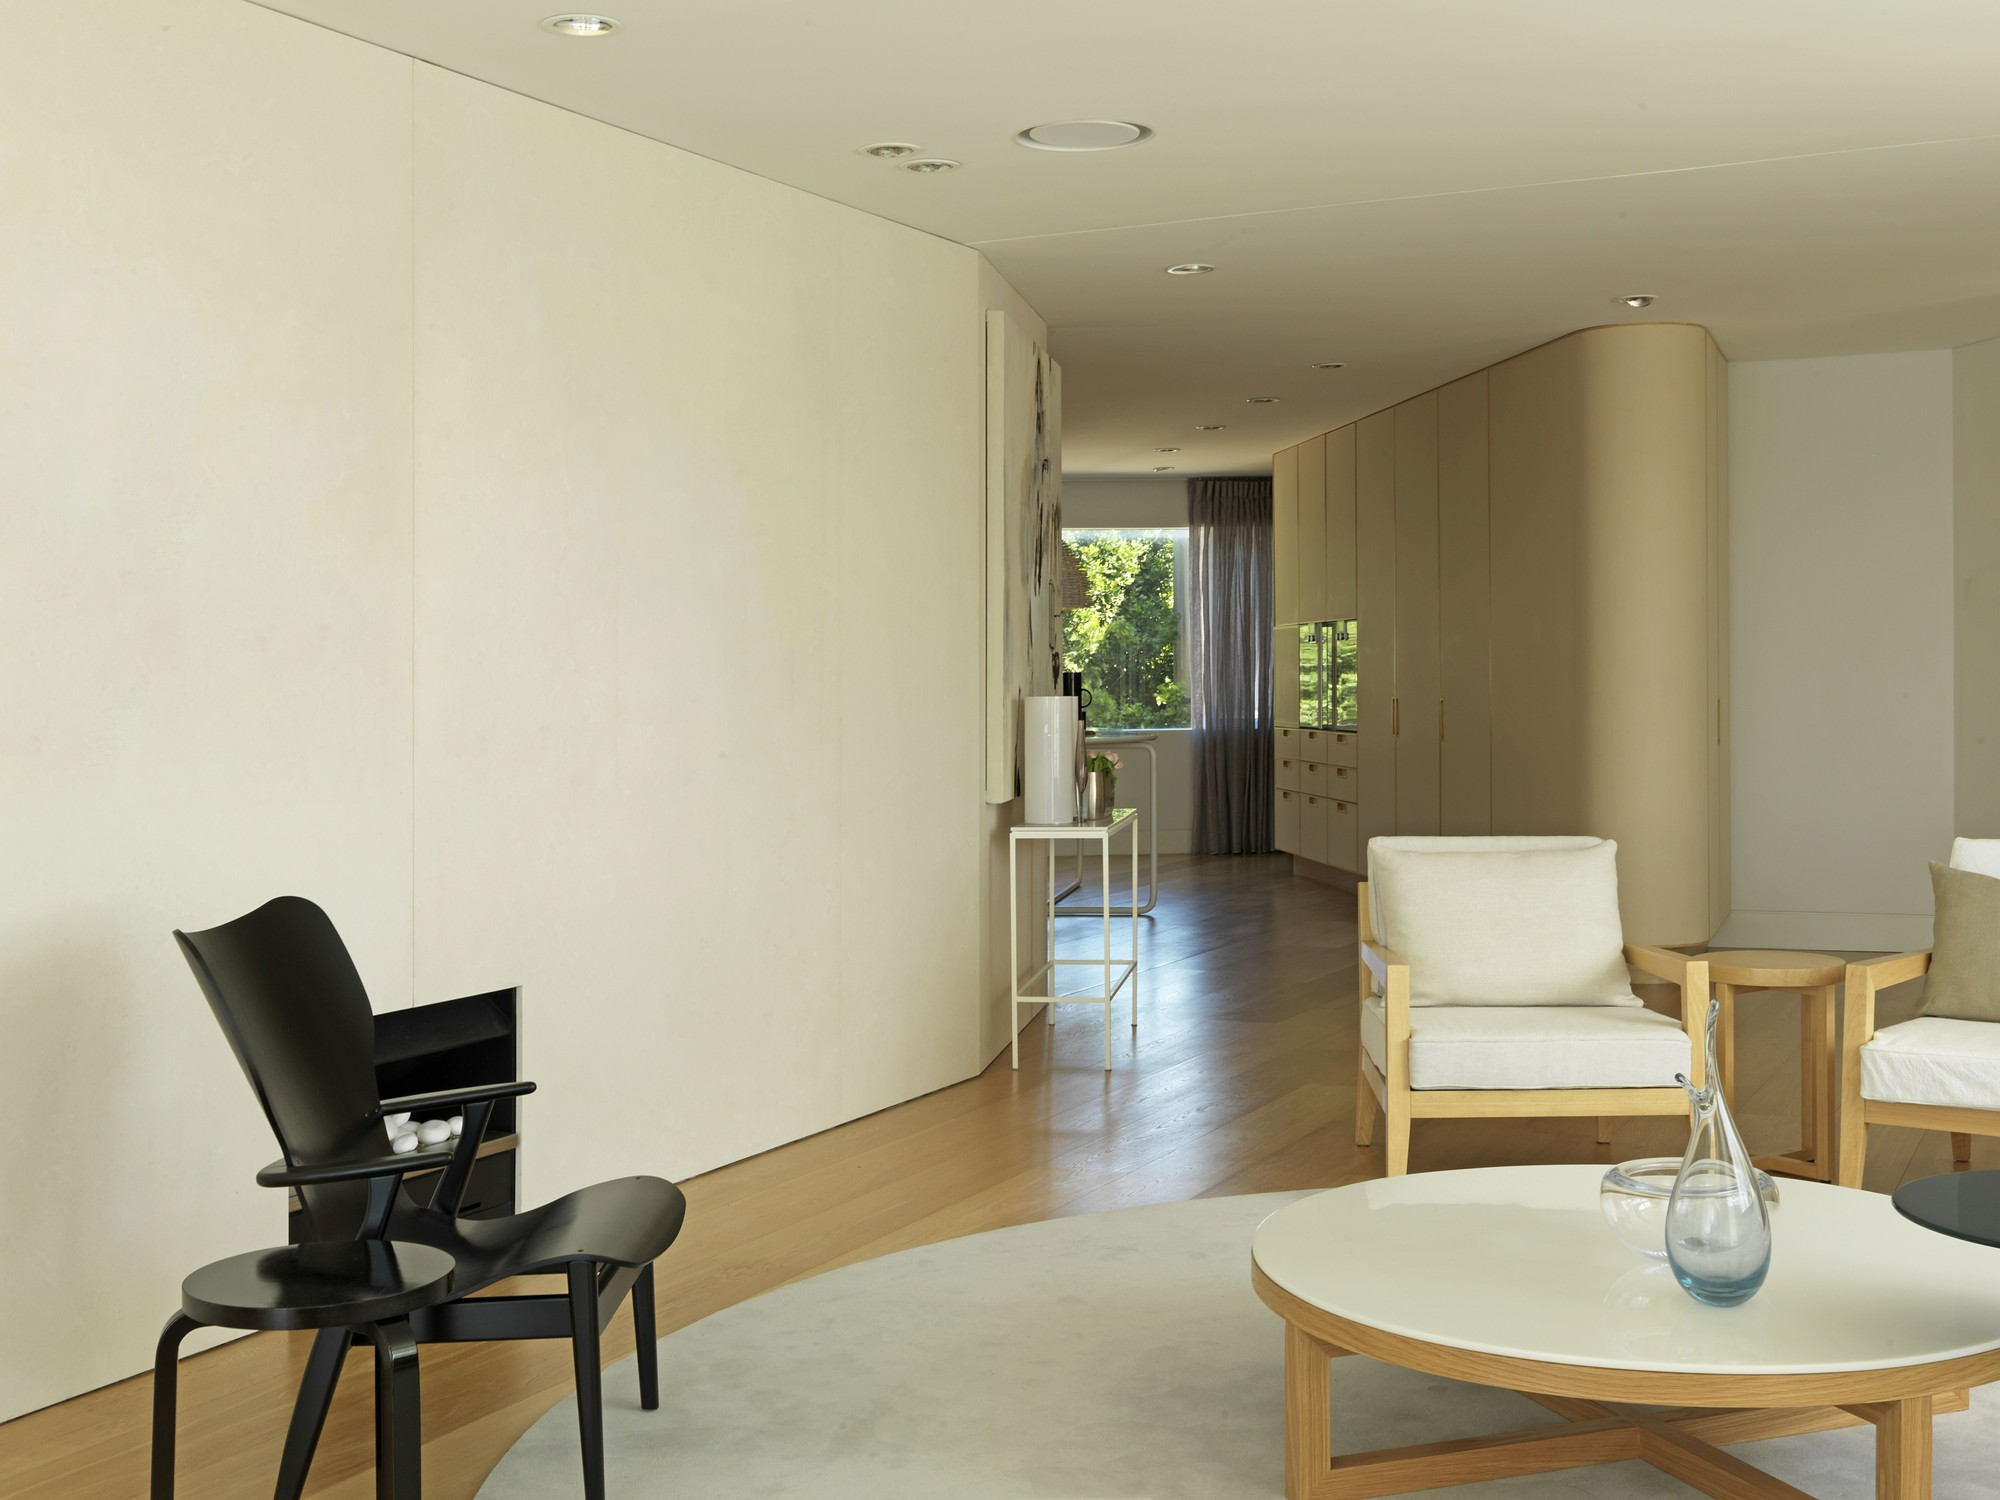 Australian institute of architects announces 2014 nsw awardspoint piper apartment co ap